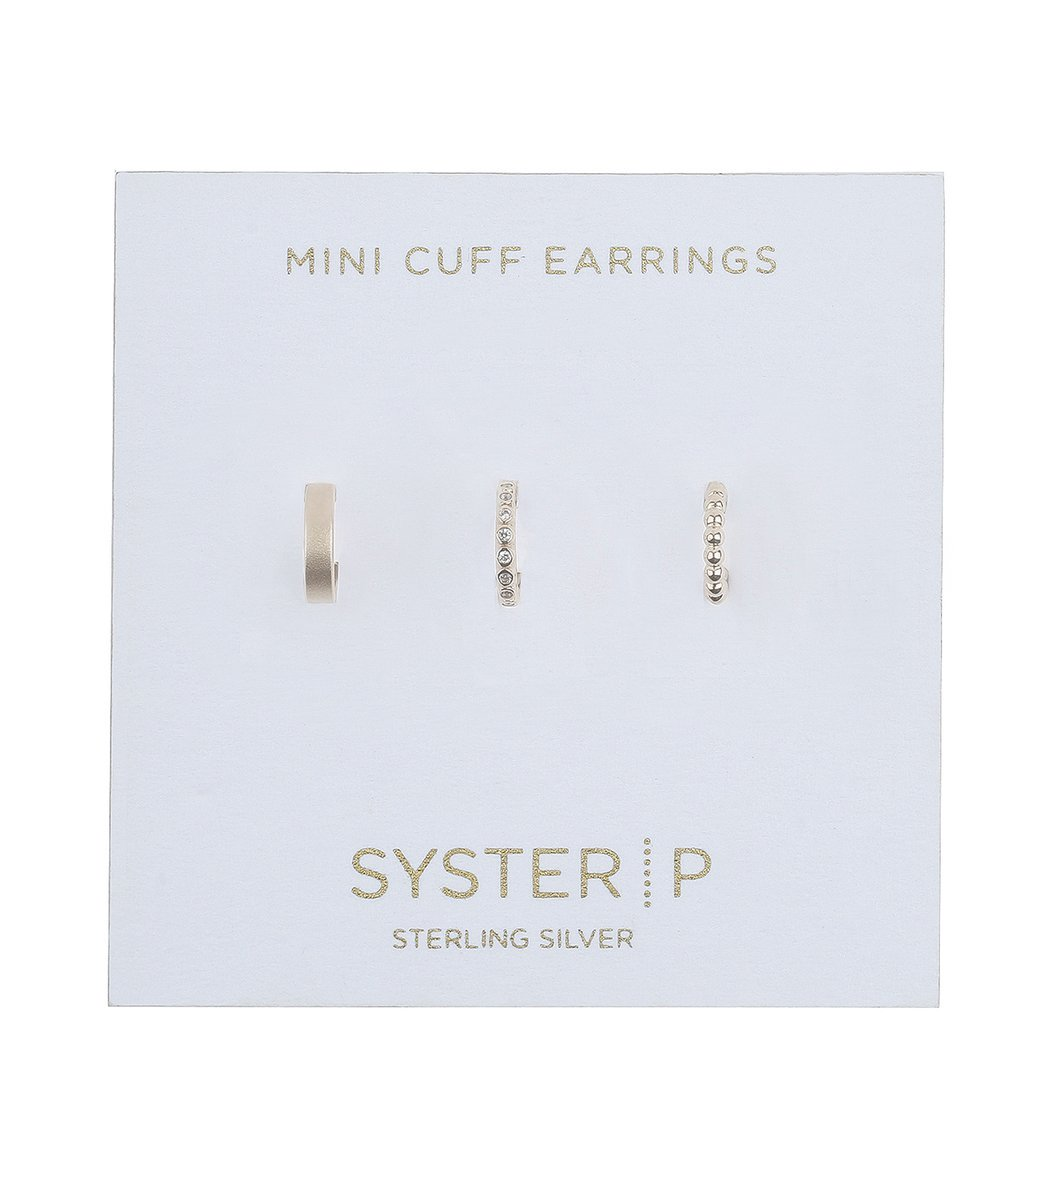 SYSTER P Mini cuff earrings sparkle